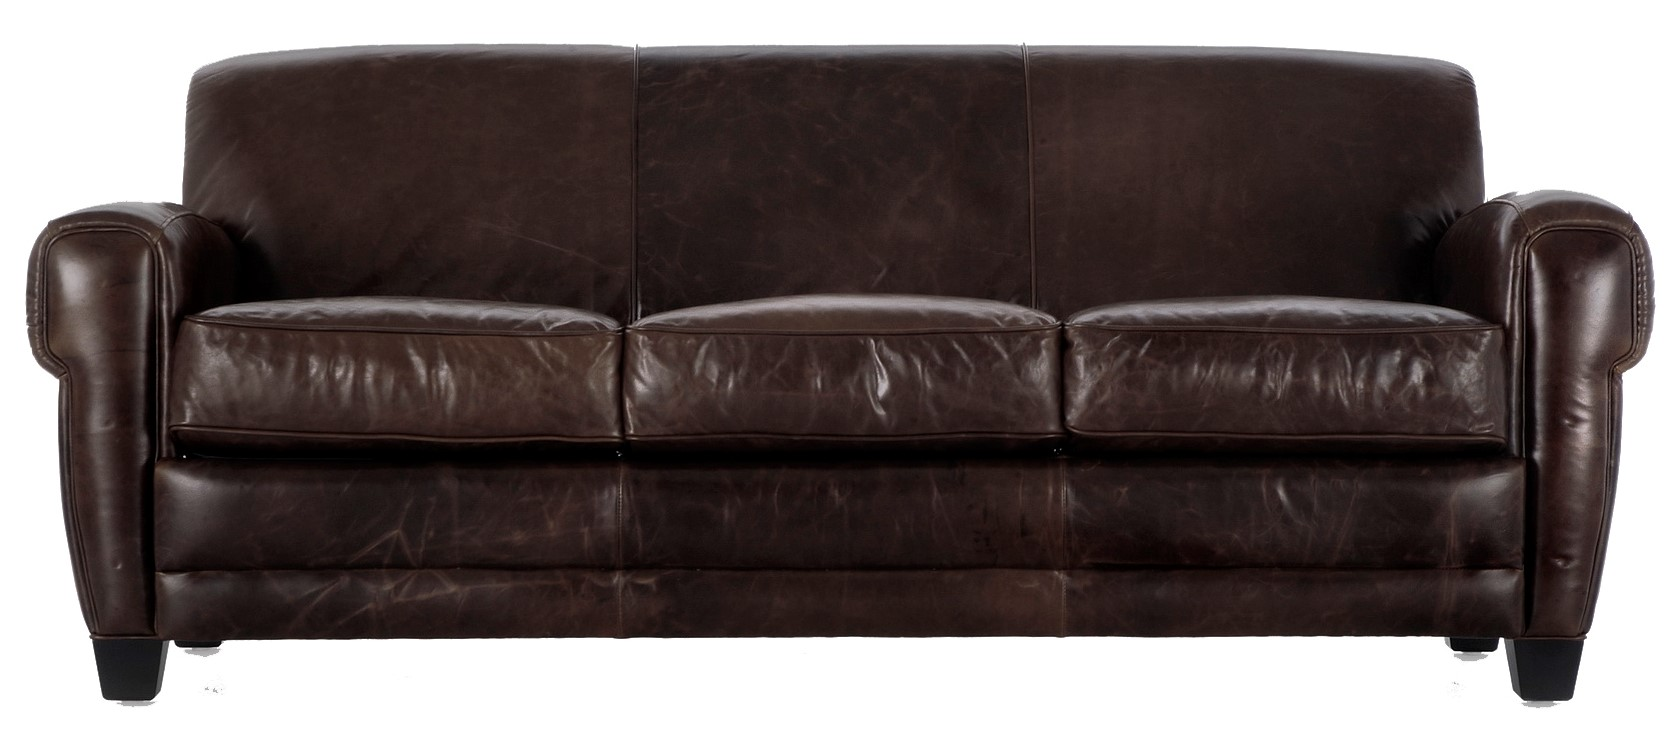 Brilliant Havana Full Top Grain Leather Sofa 61403E 3066 Sofas And Machost Co Dining Chair Design Ideas Machostcouk